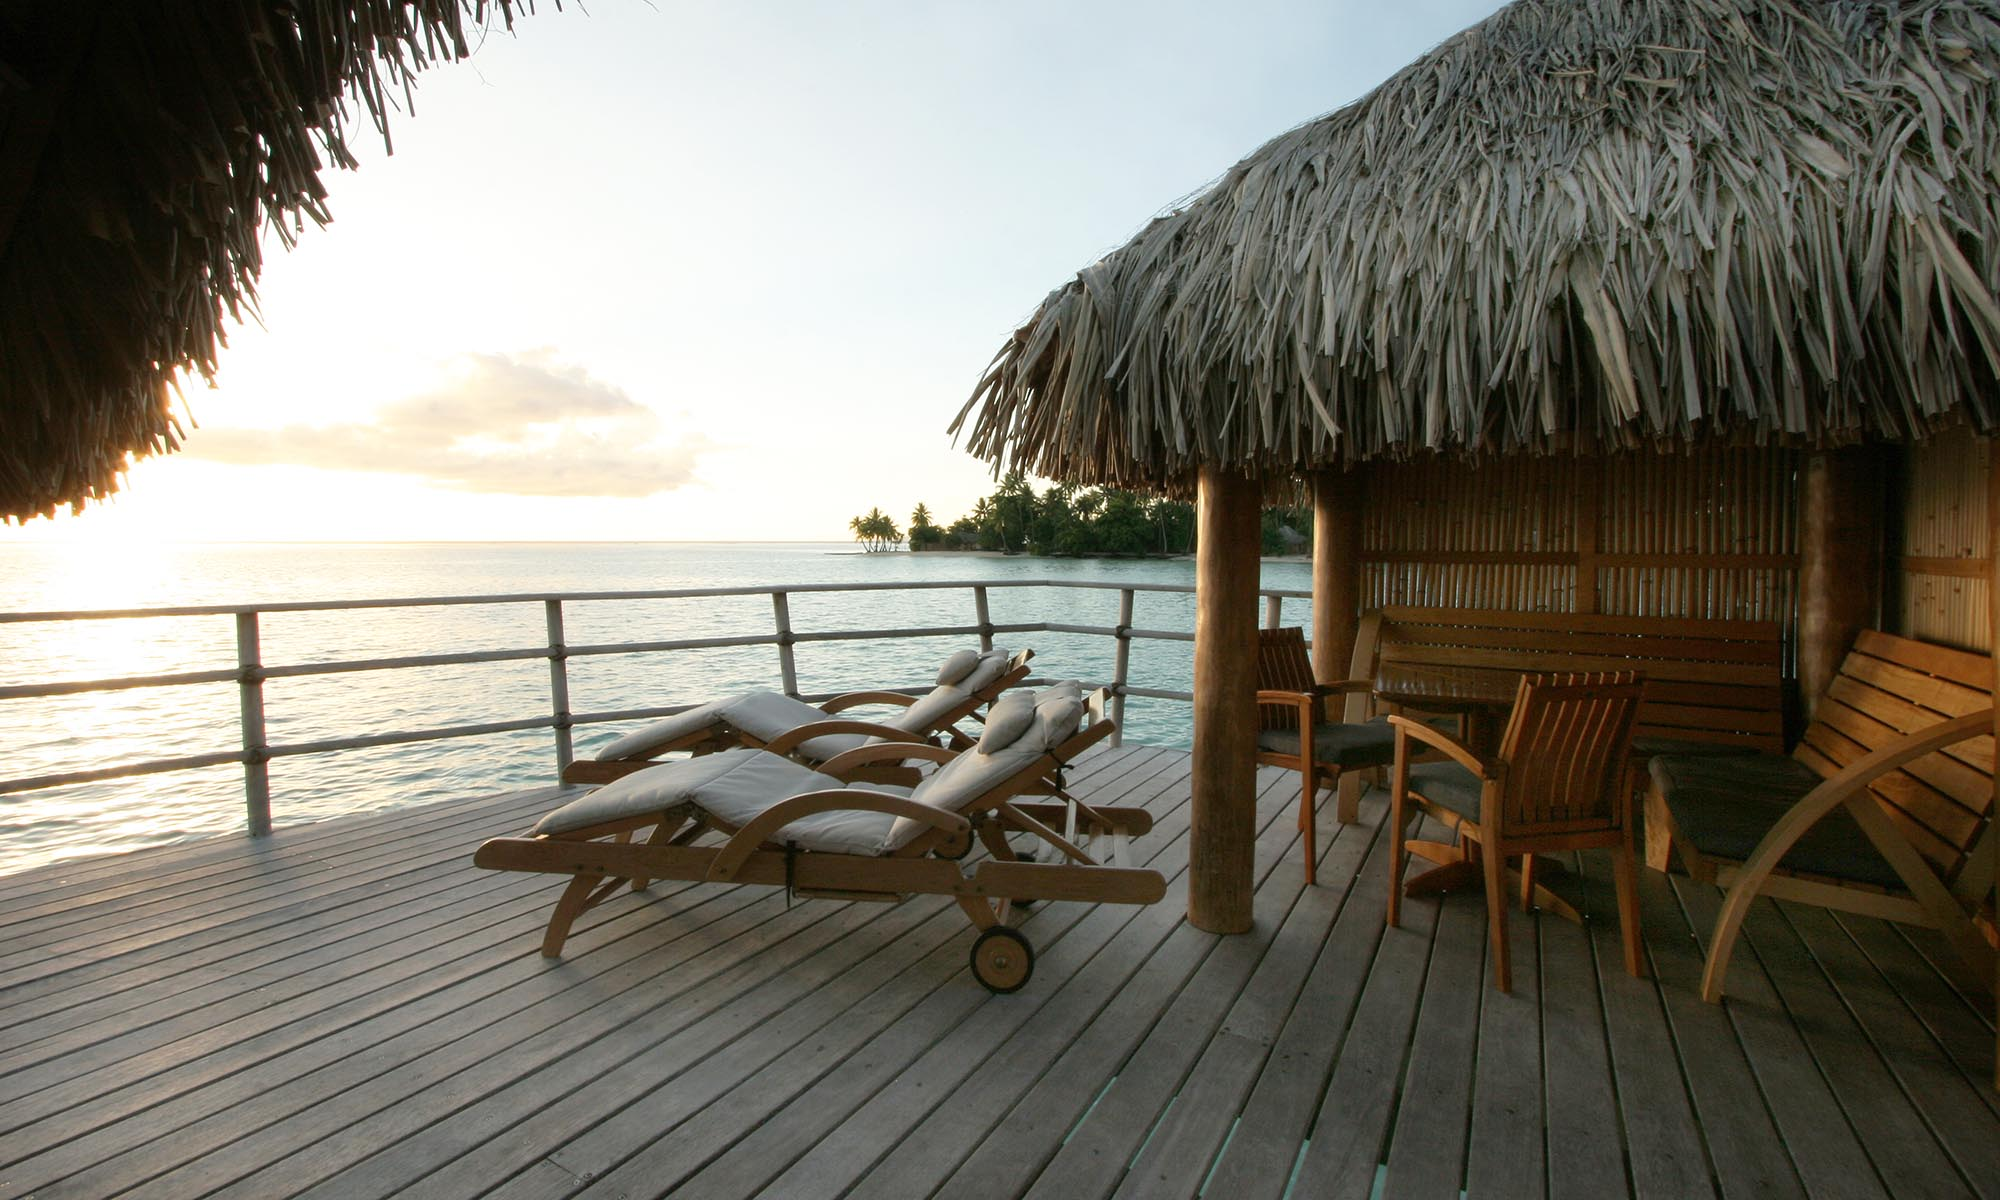 Le Taha'a Island Resort & Spa, Overwater Bungalow Deck